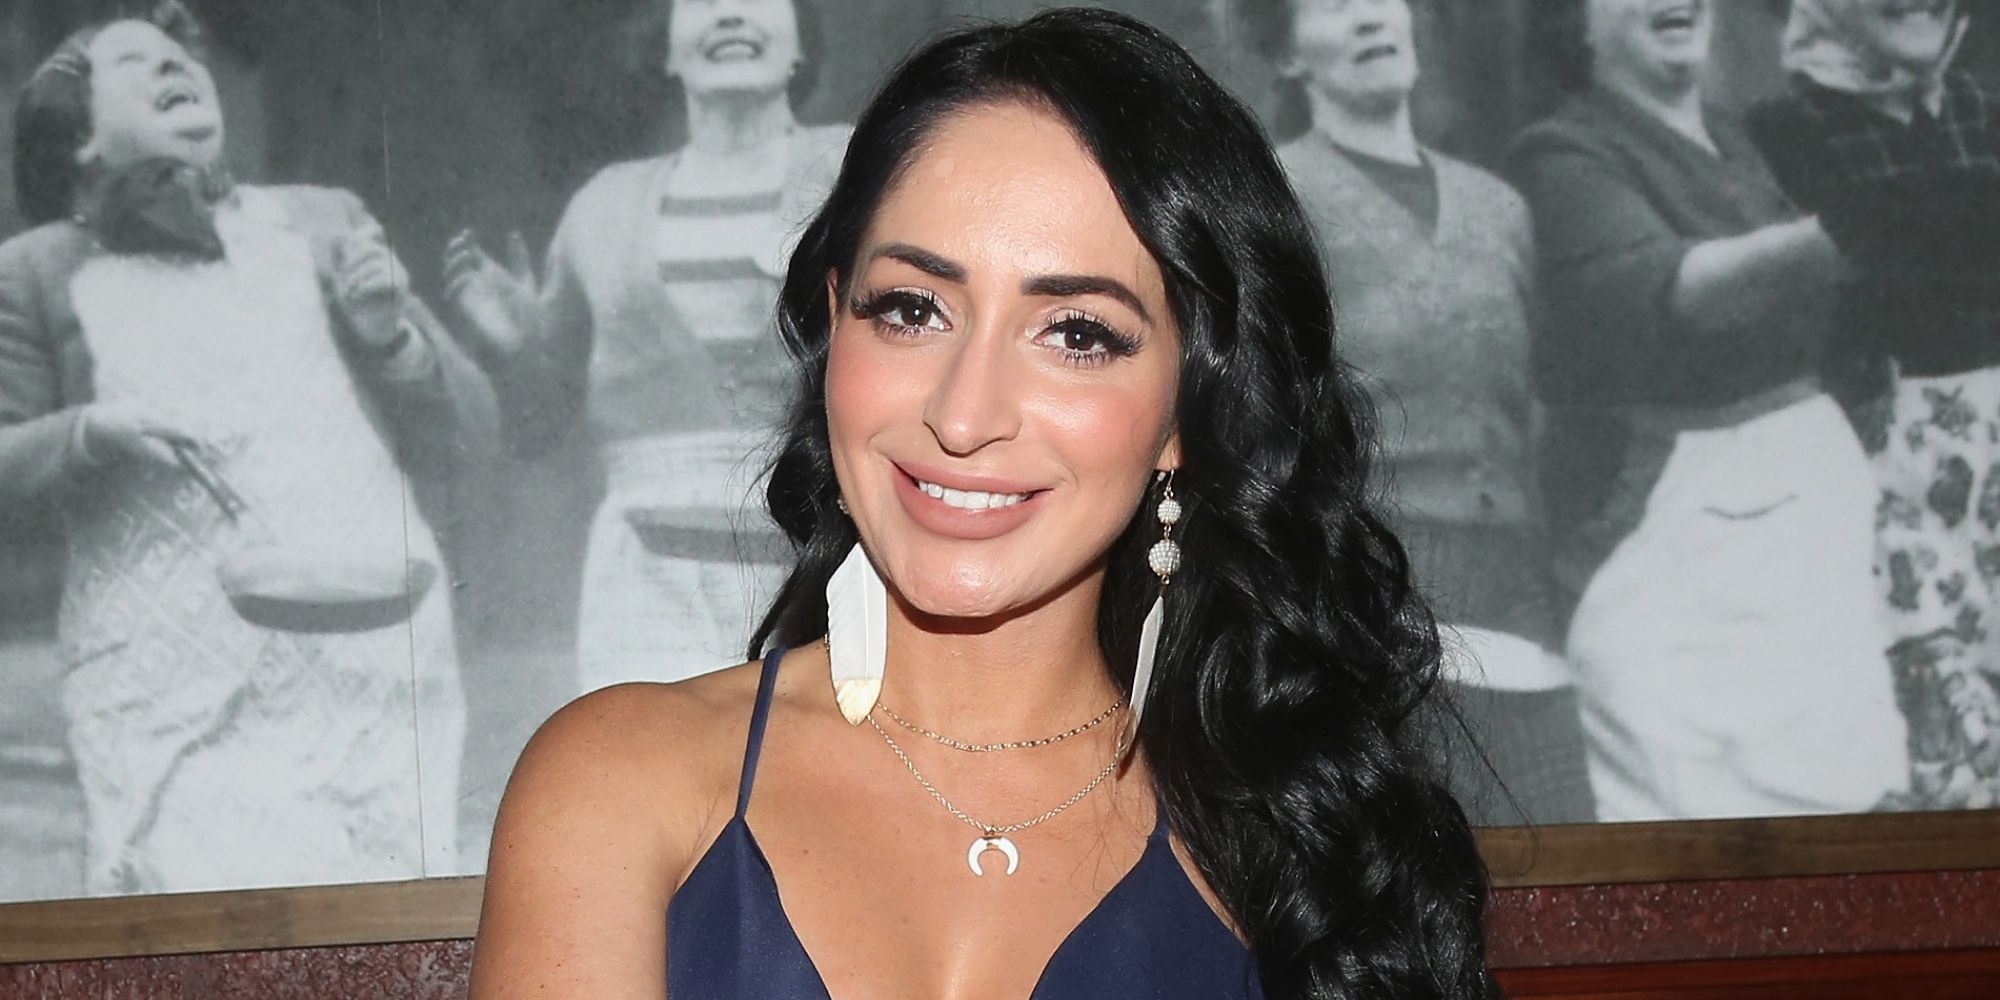 Angelina Jersey Shore Sexy how tall is angelina pivarnick